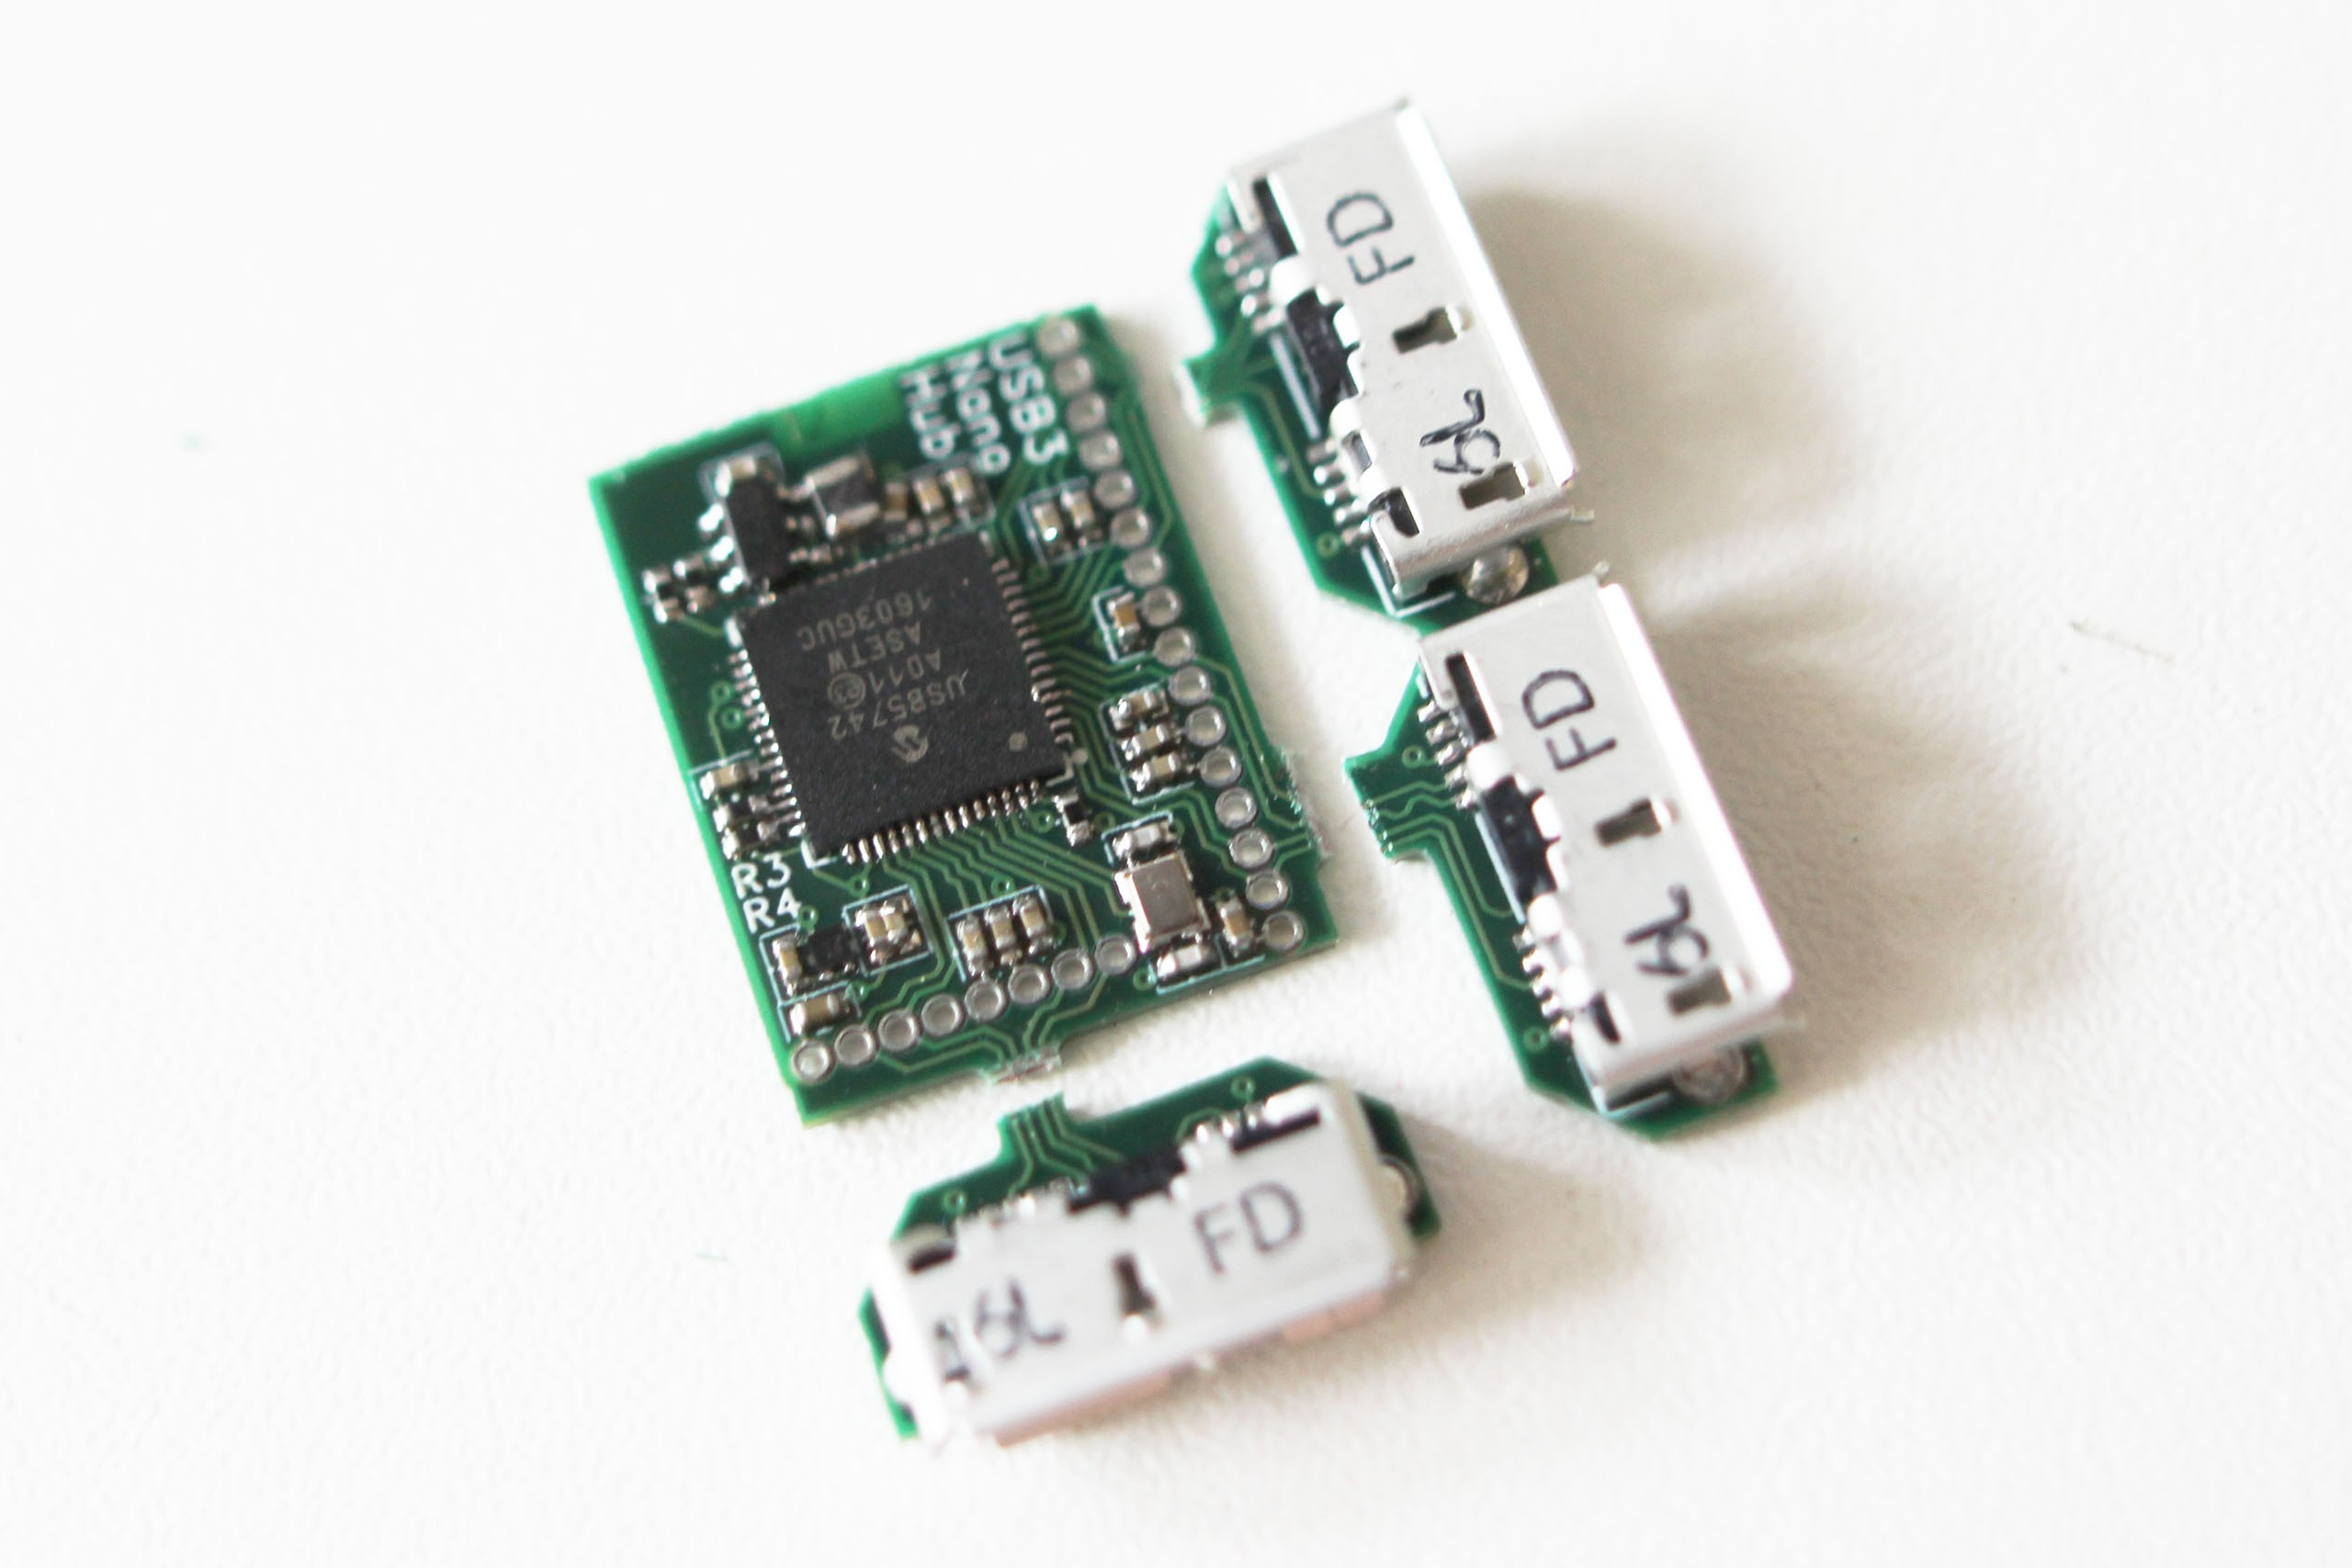 Nanohub Tiny Usb 20 And 30 Hubs Splitter Schematic I Finally Received The Hub Chip Order Assembled A Couple Of 31 Nanohubs Really Like How It Has Become